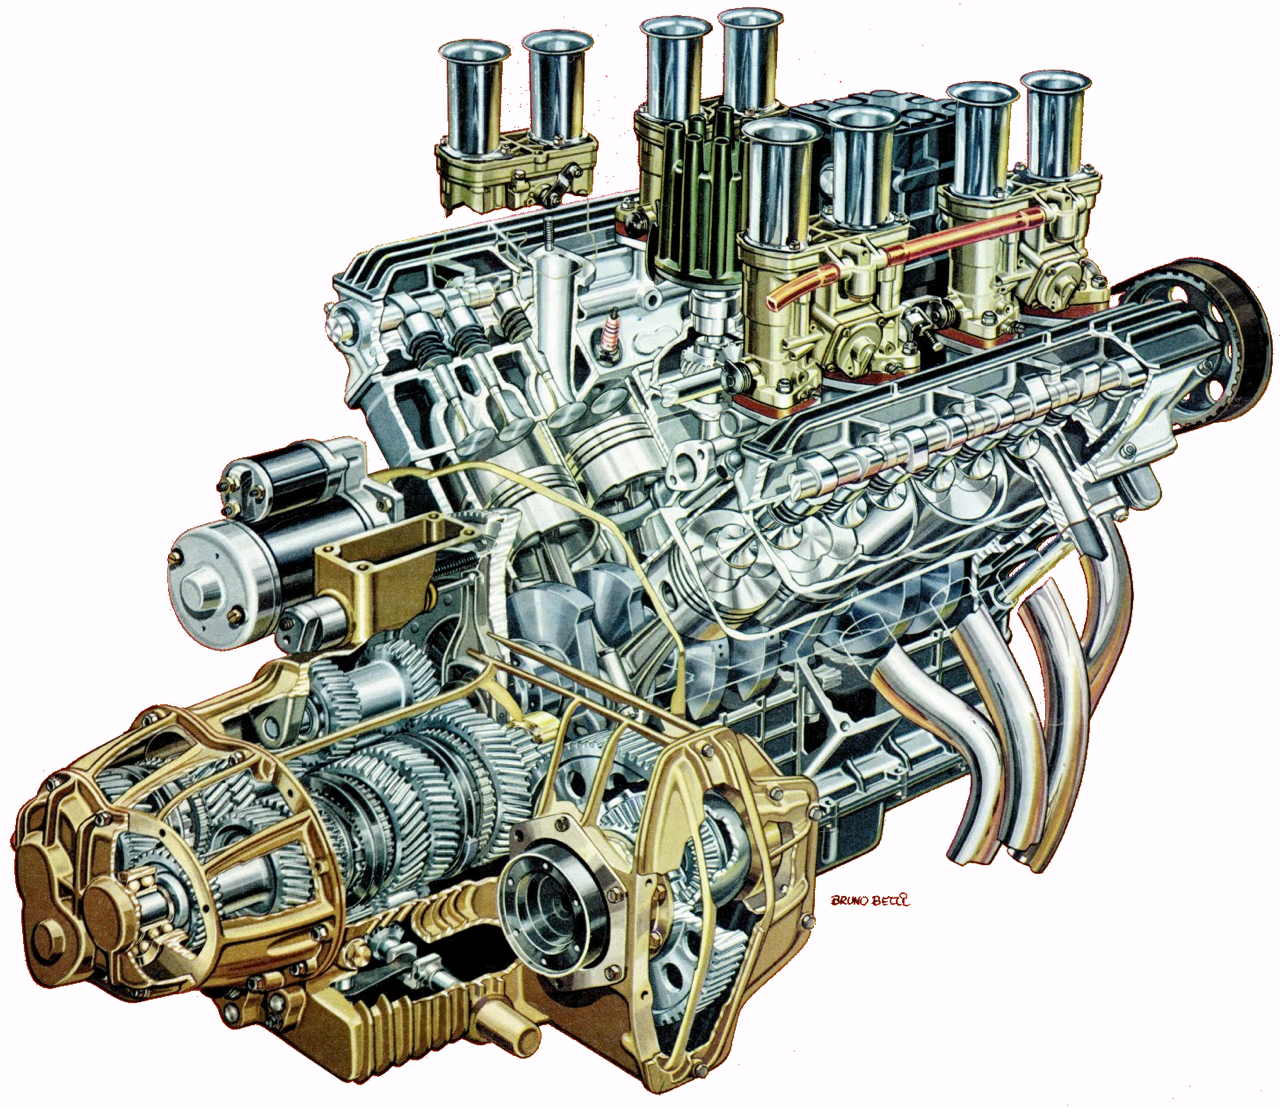 1280x1107 V8 Engine Cutaway Illustration Race Engines Amp Cutaways